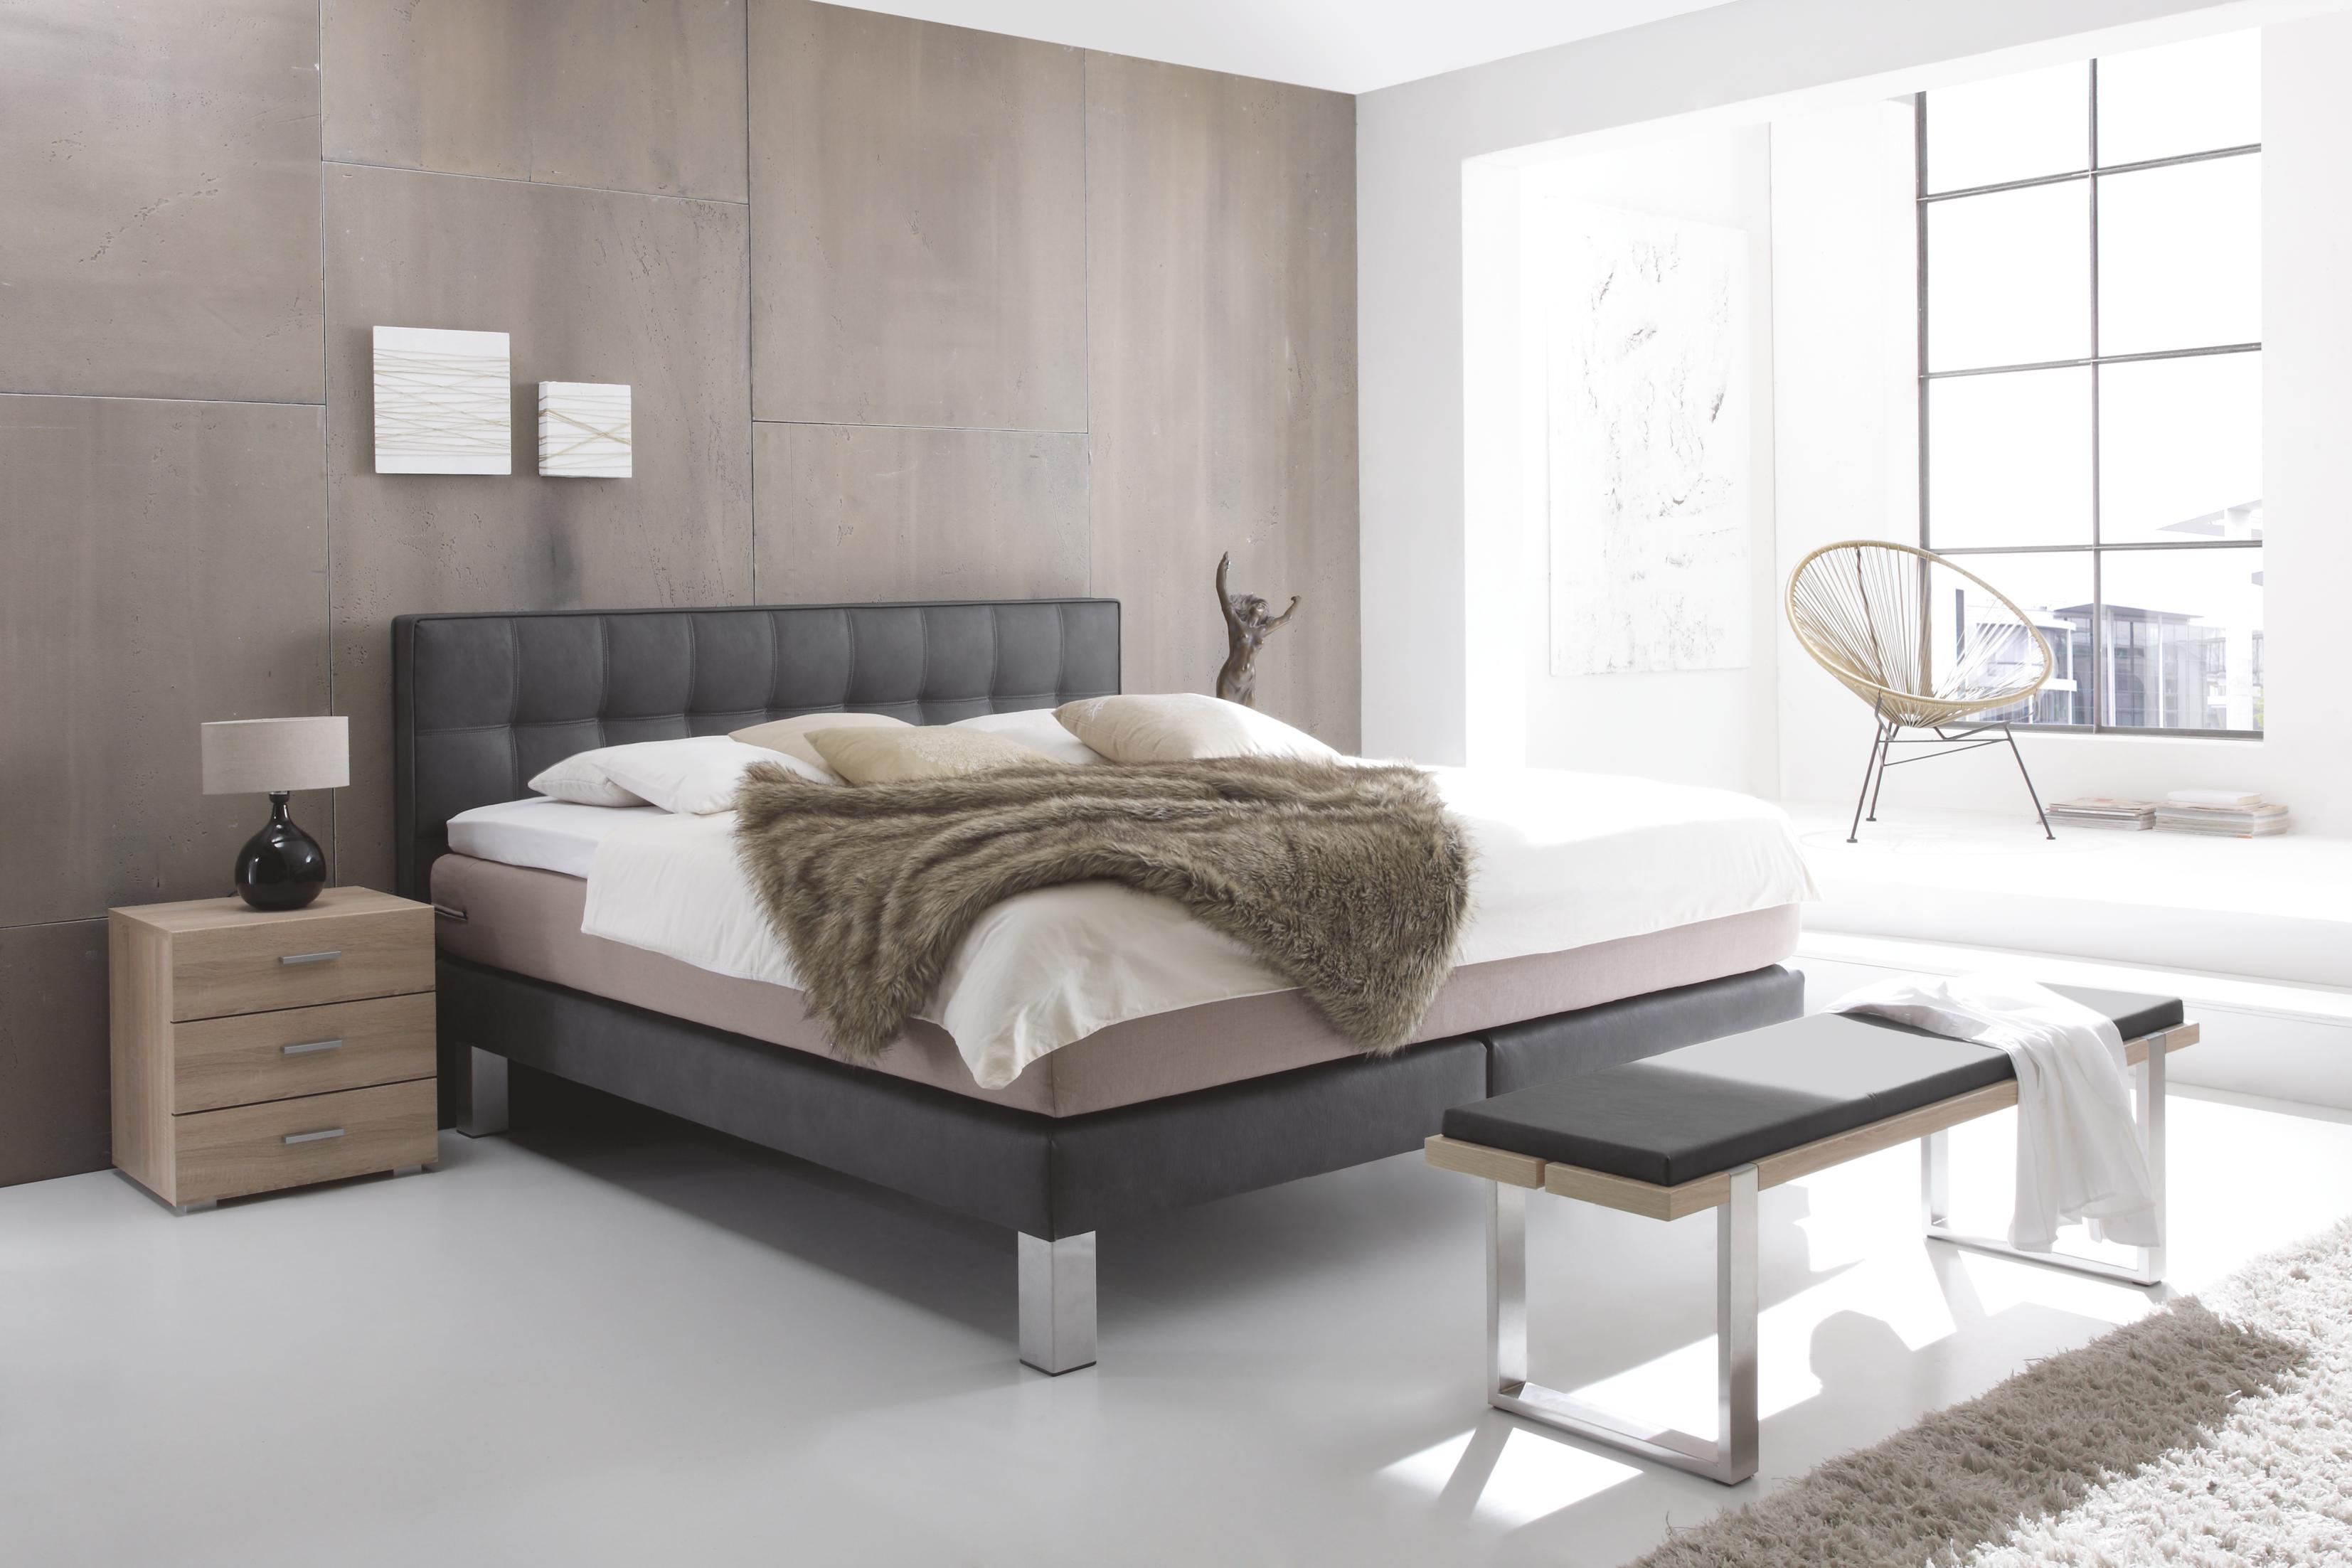 boxspringbett modern art neuesten design kollektionen f r die familien. Black Bedroom Furniture Sets. Home Design Ideas